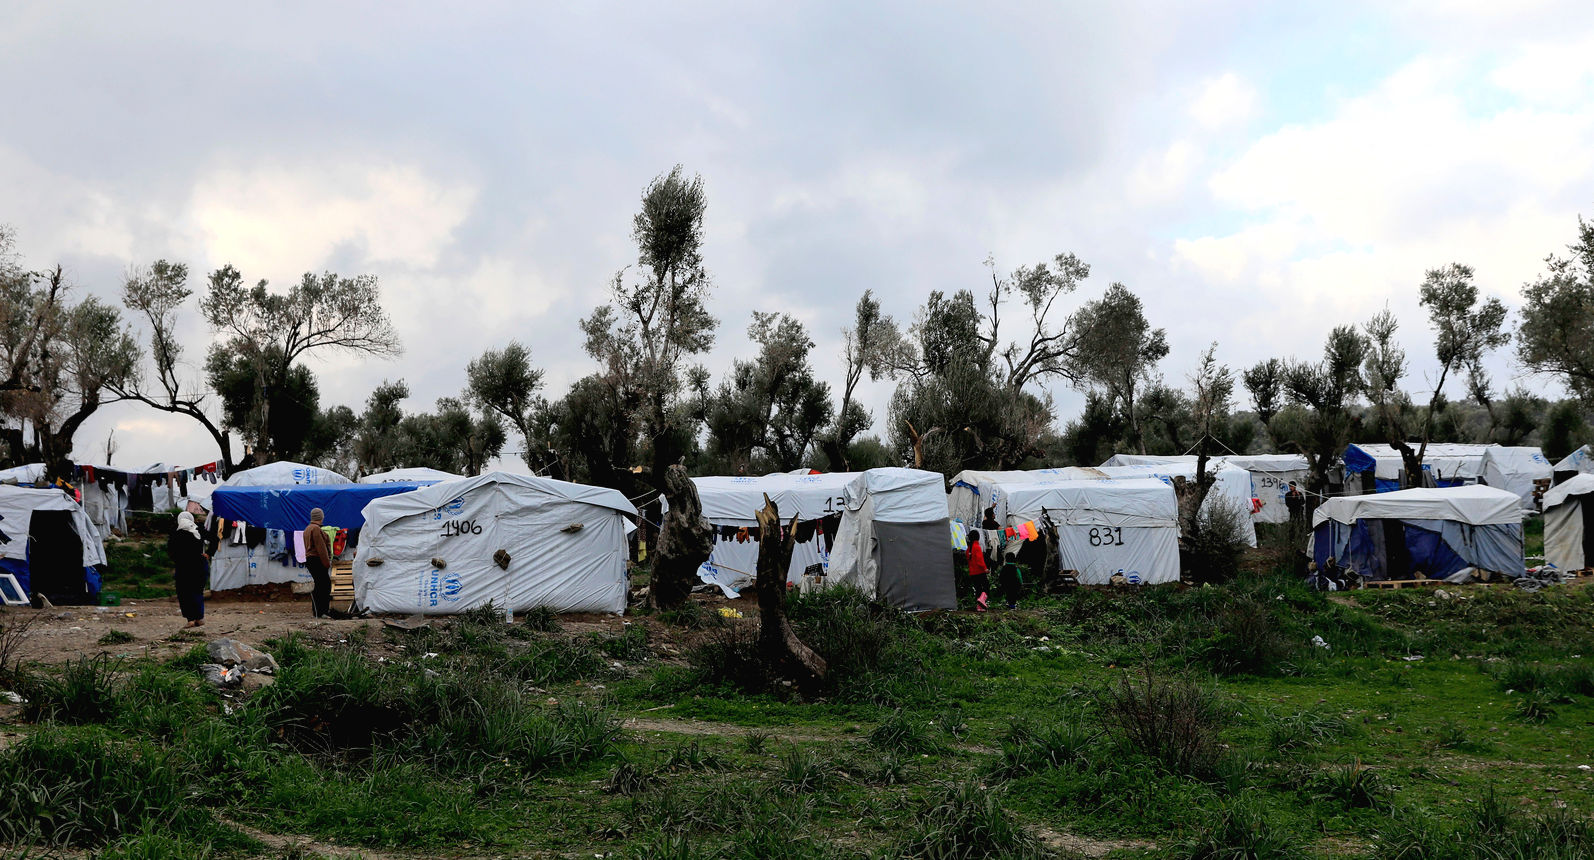 Flüchtlingslager Moria in Griecheland | © Giorgos Moutafis/Amnesty International